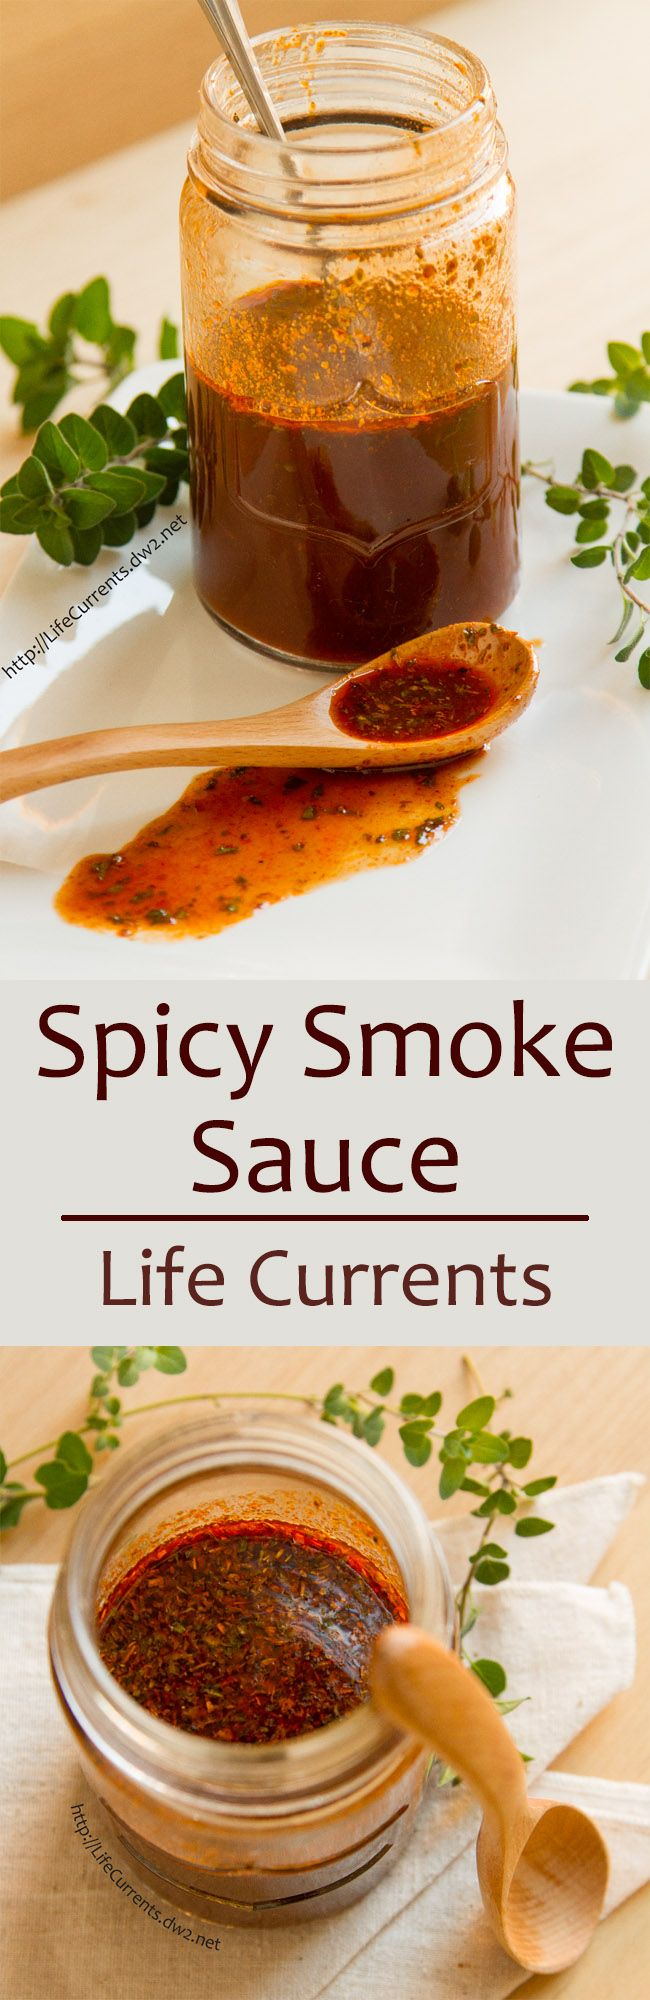 Spicy Smoke Sauce ~~~ Ingredients ~ 1 tsp dried oregano ~ 1 tsp dried parsley ~ 1 tsp smoked paprika ~ ½ tsp cayenne ~ 4 TBS Heinz Chili Sauce ~ 1 TBS olive oil ~ 2 TBS Worcestershire ~ 1 ½ tsp Liquid Smoke ~ ½ tsp Sriracha ~ ¾ cup water ~ ½ tsp Better than Bouillion vegetable broth paste